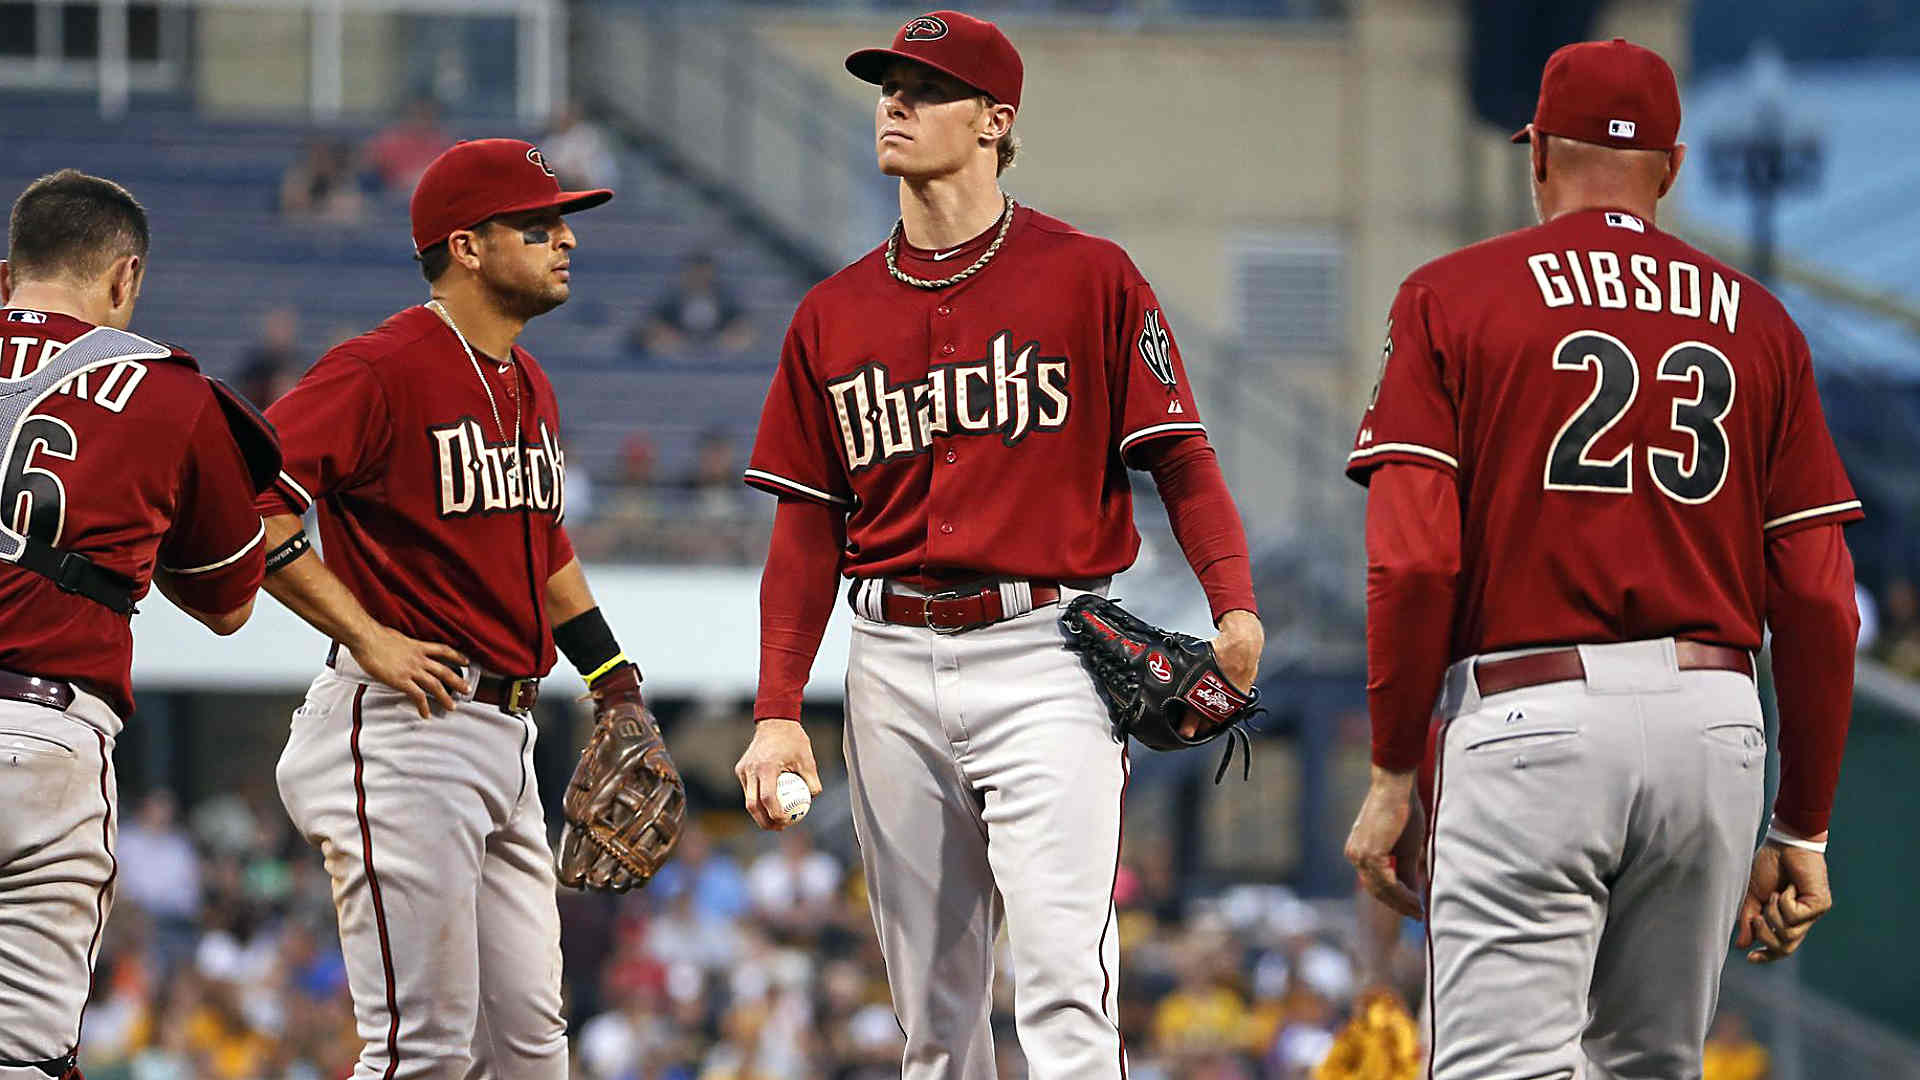 Closer Watch: Dbacks sticking with Reed ... for now